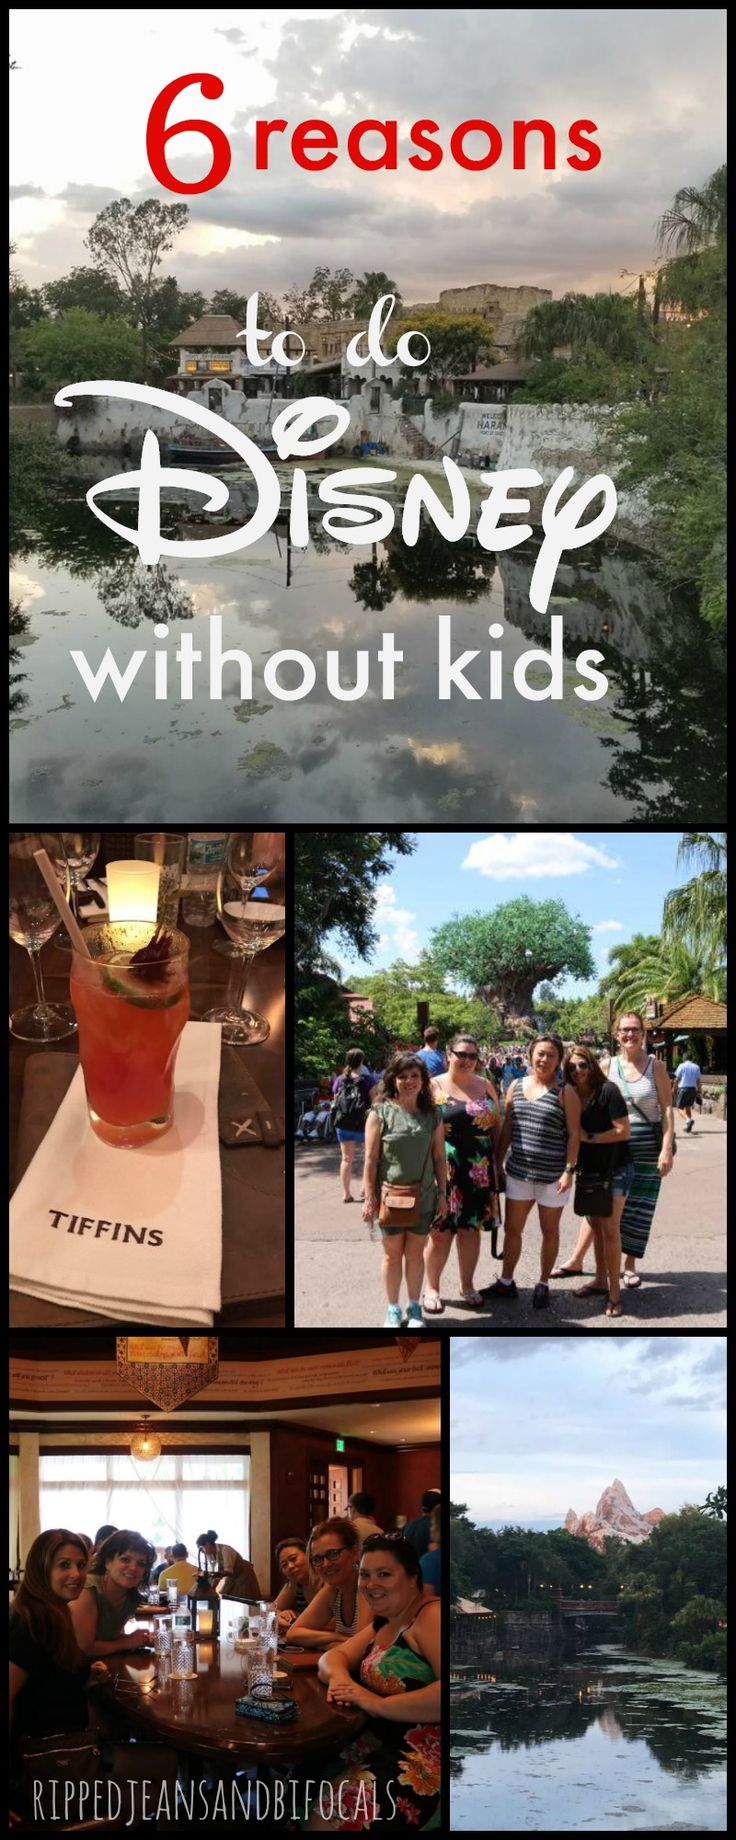 6 Reasons to to Disney without kids|Ripped Jeans and Bifocals  |Disney tips|Disney vacations|Disney's Animal Kingdom|Pandora the World of Avatar|Disney honeymoom|Disneymoon|Avatar flight of passage|Disney ideas|Disney's Animal Kingdom Tips|Disney for adults|Adults only Disney